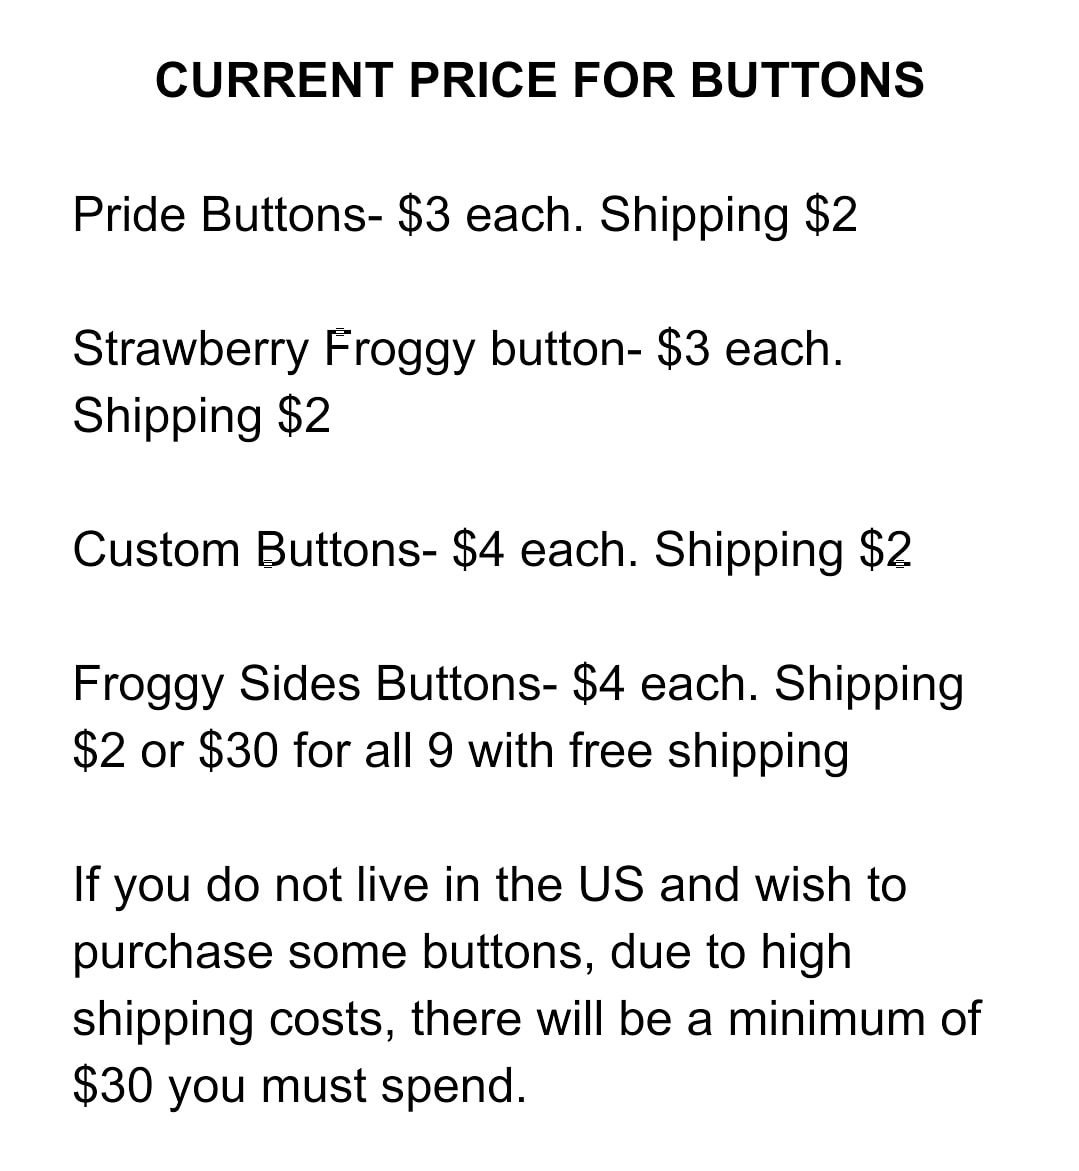 Prices for my buttons currently. Due to high shipping costs for international, you must purchase at least a minimum of $30 #buttons #smallbusinessowner #SmallBusiness #artistsontwitterpic.twitter.com/zfq9PiTgf4